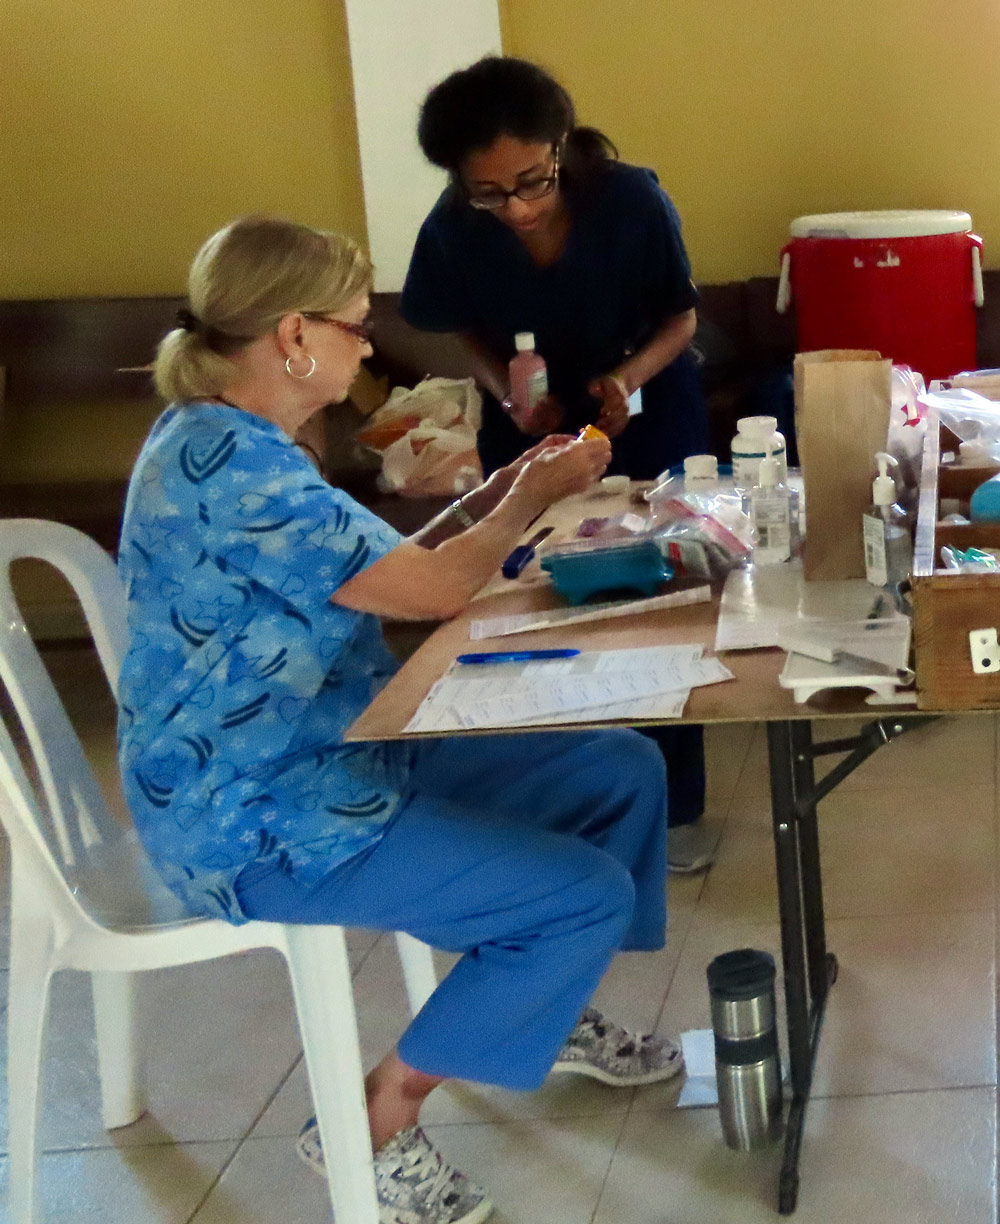 public health students working in the Dominican Republic providing care.